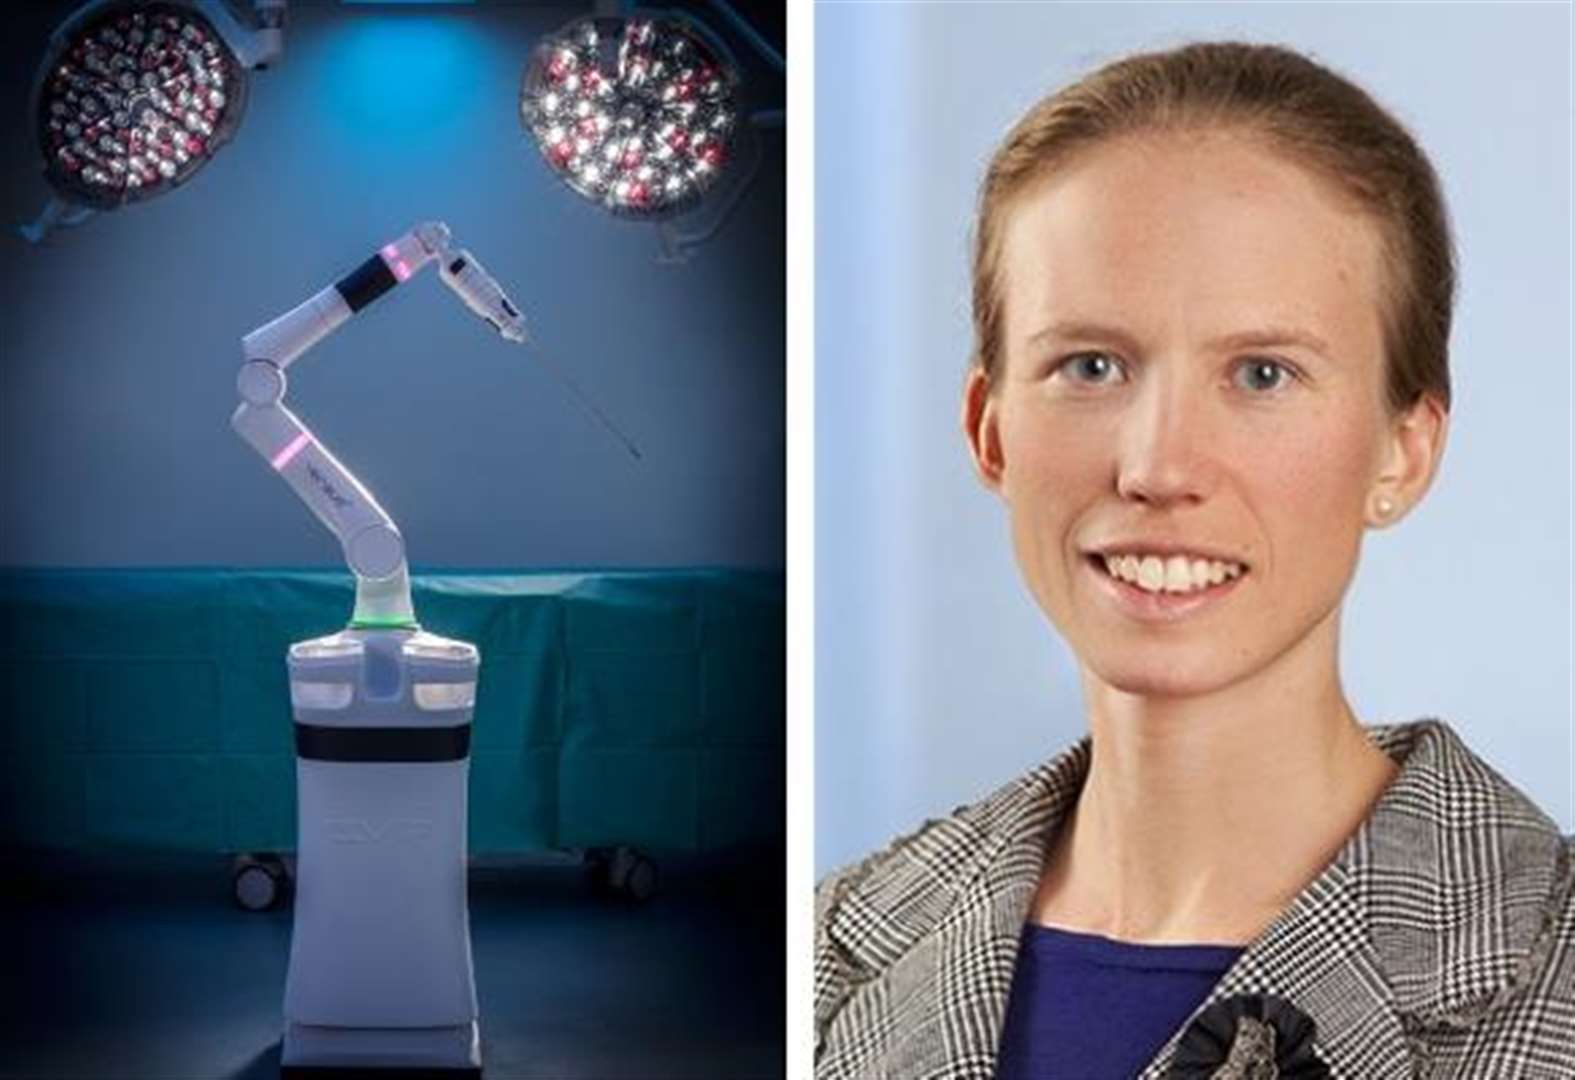 CMR Surgical appoints Ingeborg Øie as chief financial officer